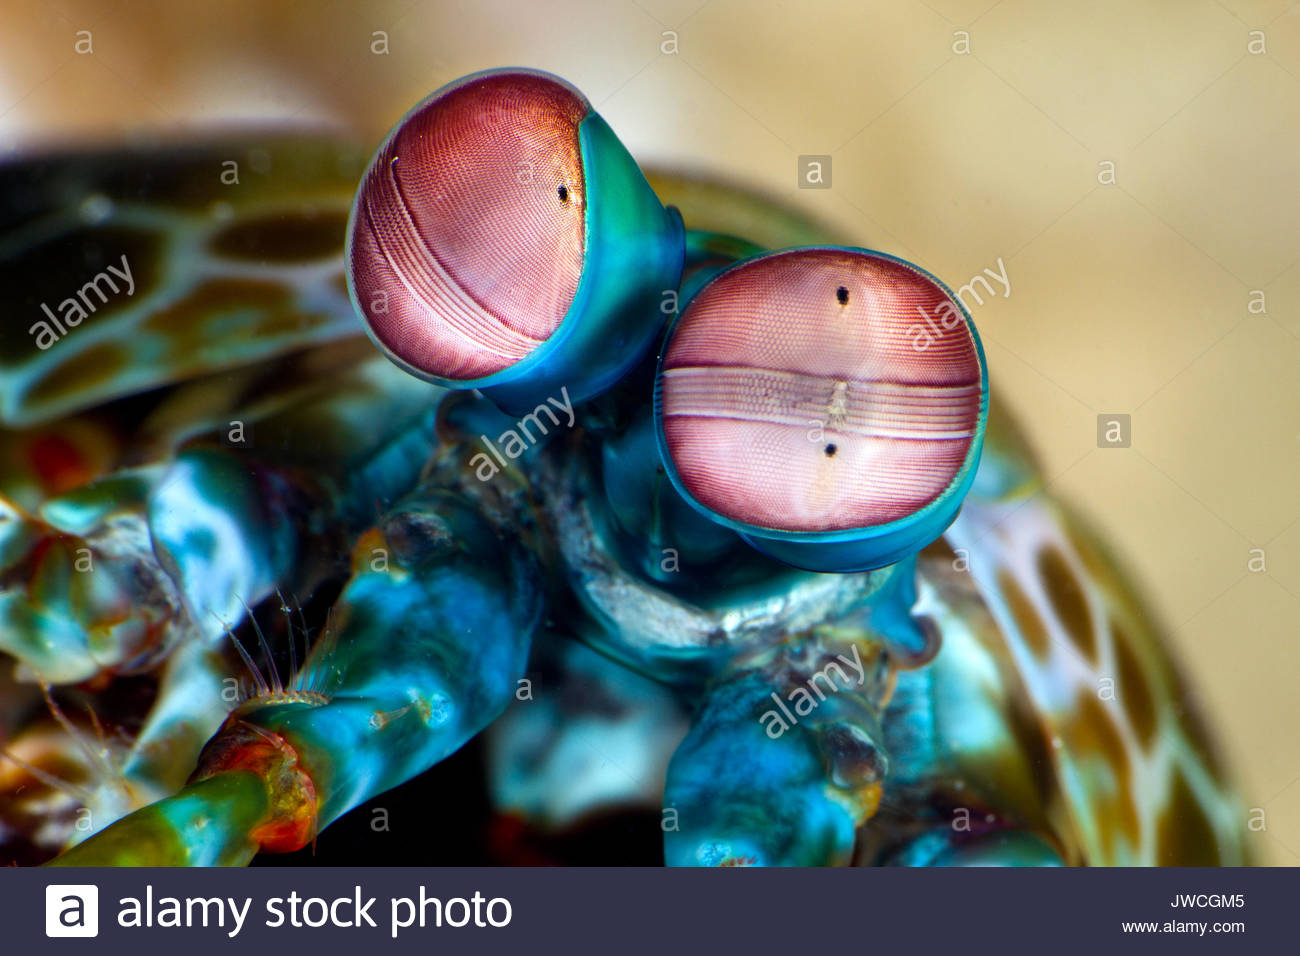 The eyes of a peacock mantis shrimp, their vision is some of the most complex known to science. - Stock Image